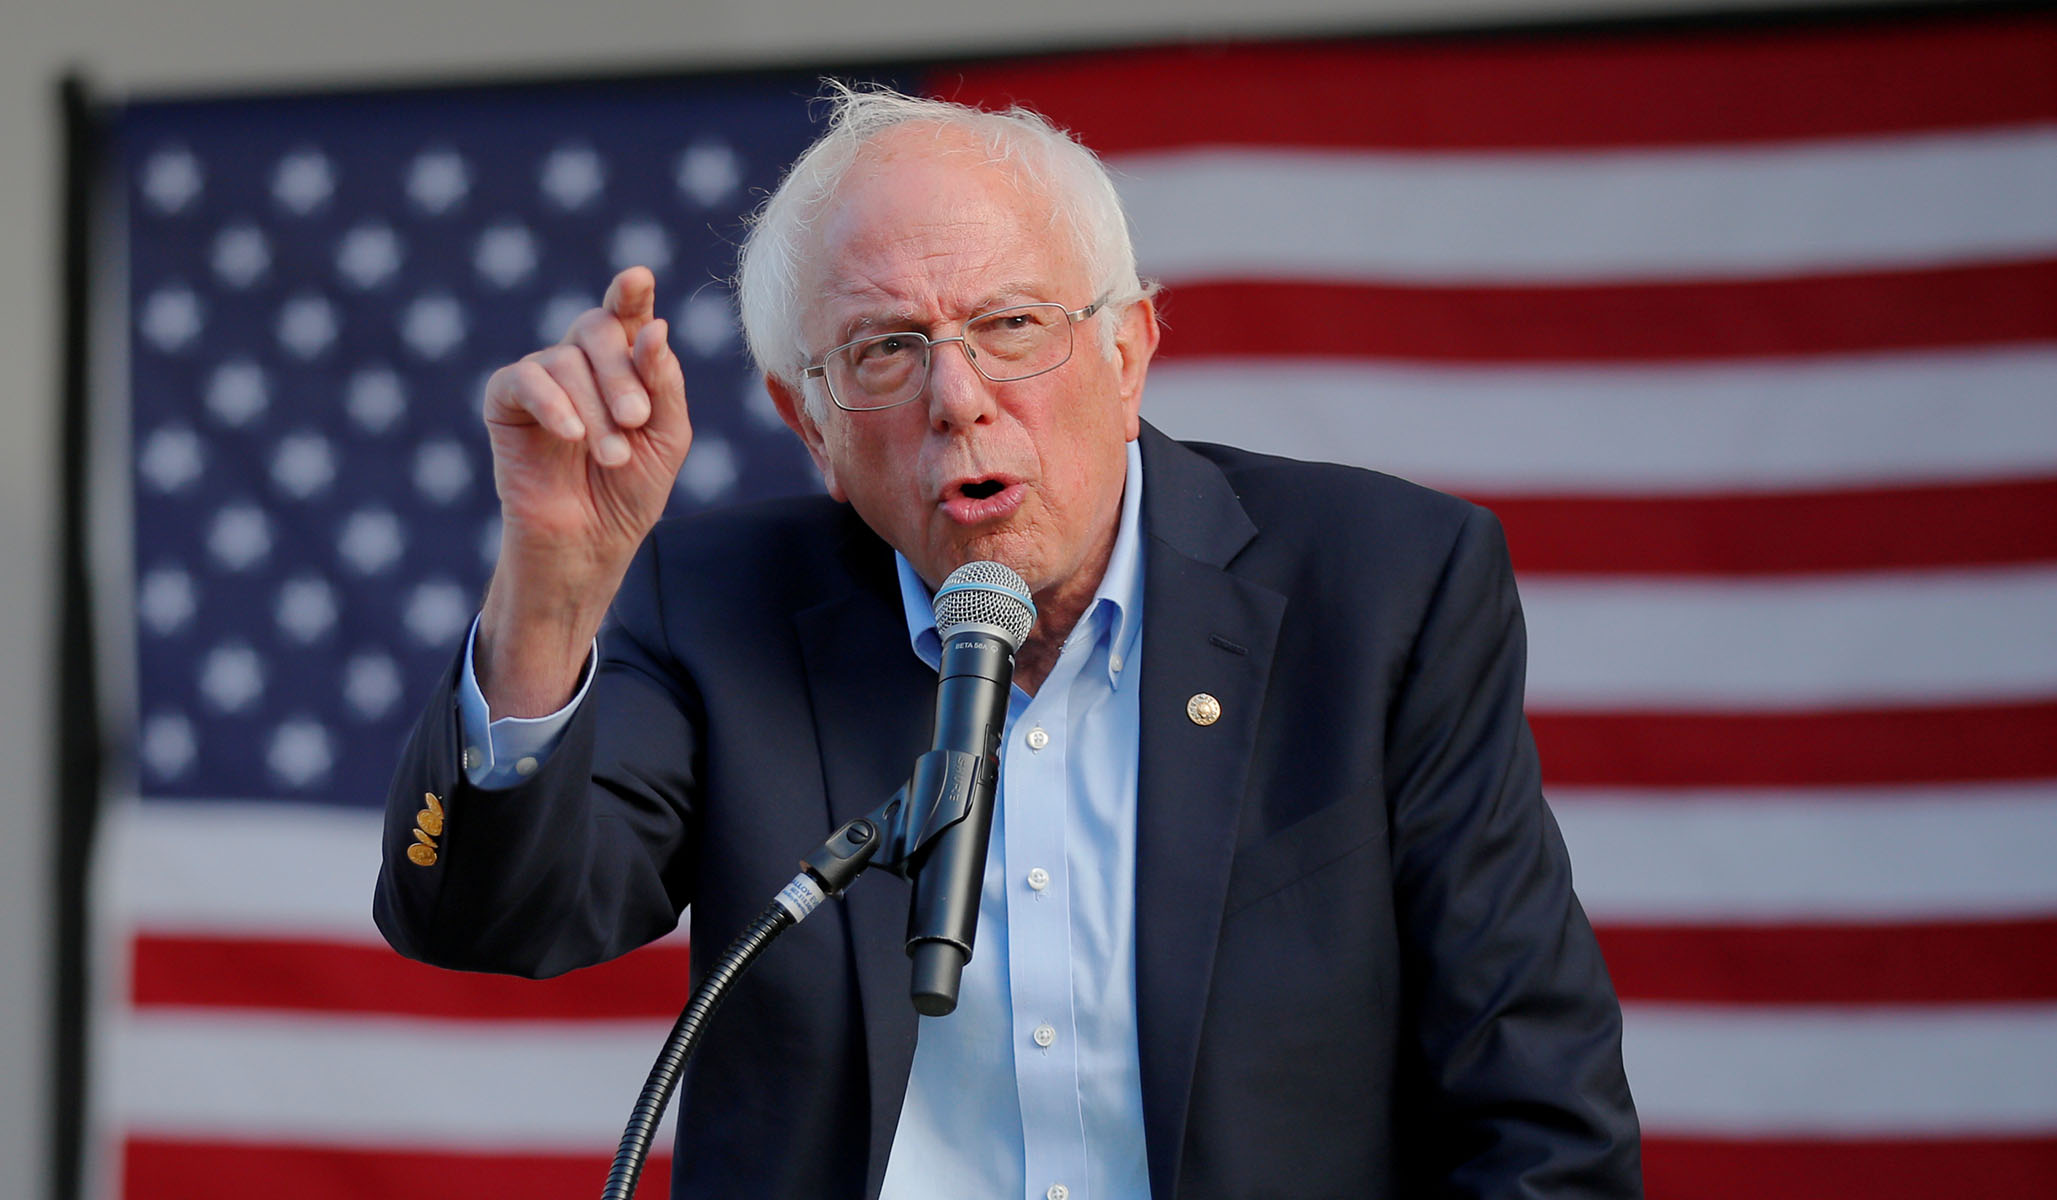 Bernie Sanders Advocates Population Control in 'Poor Countries'